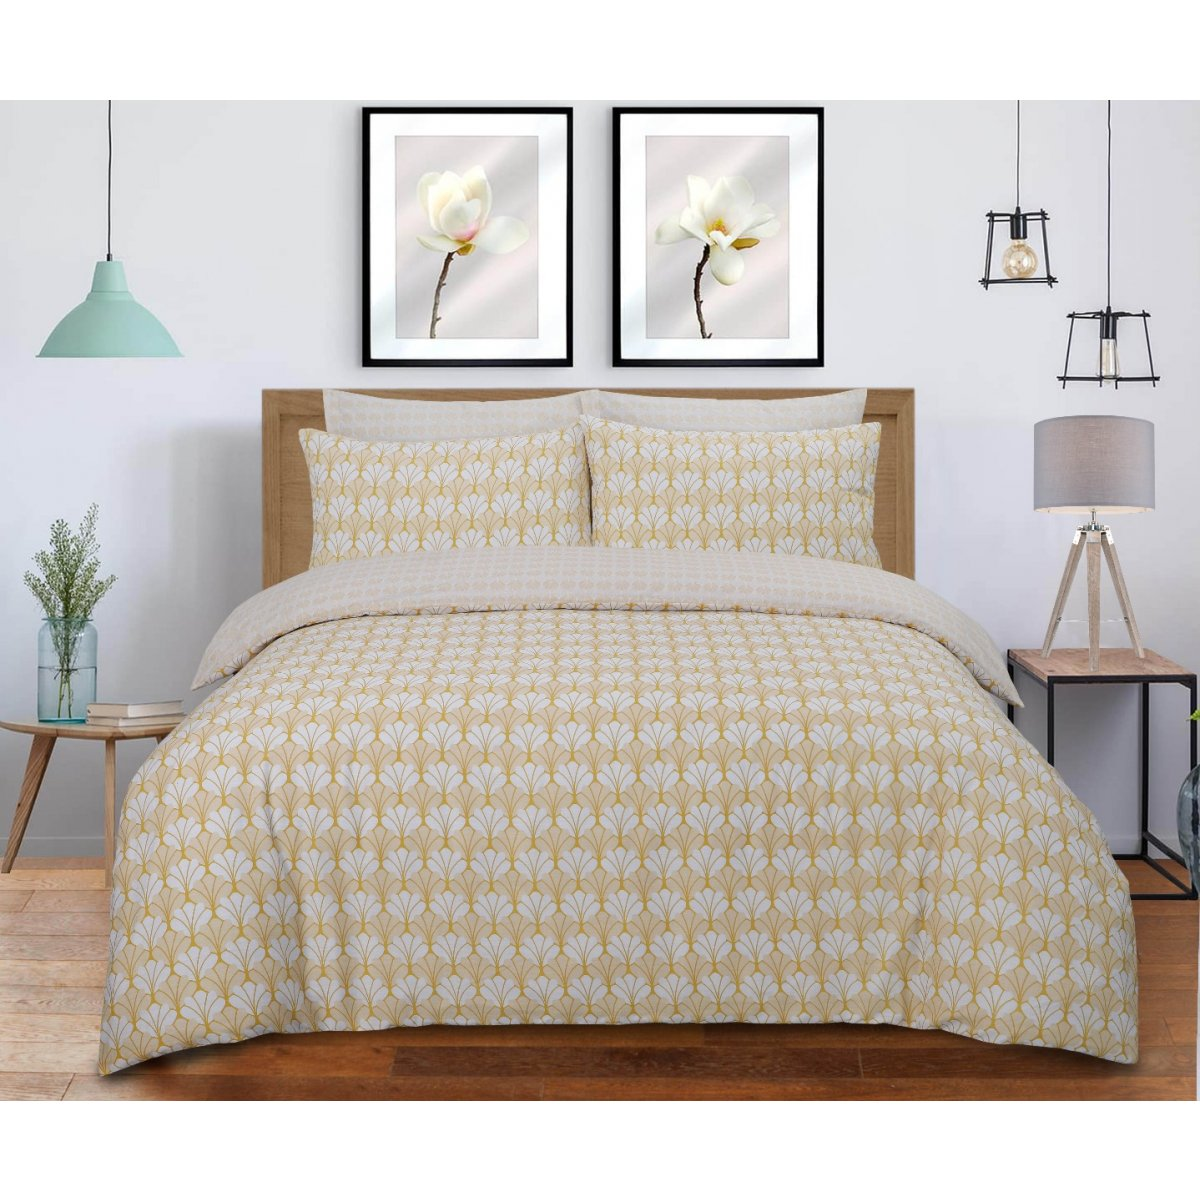 Scallop Ochre Bedding - Reversible Duvet Cover and Pillowcase Set